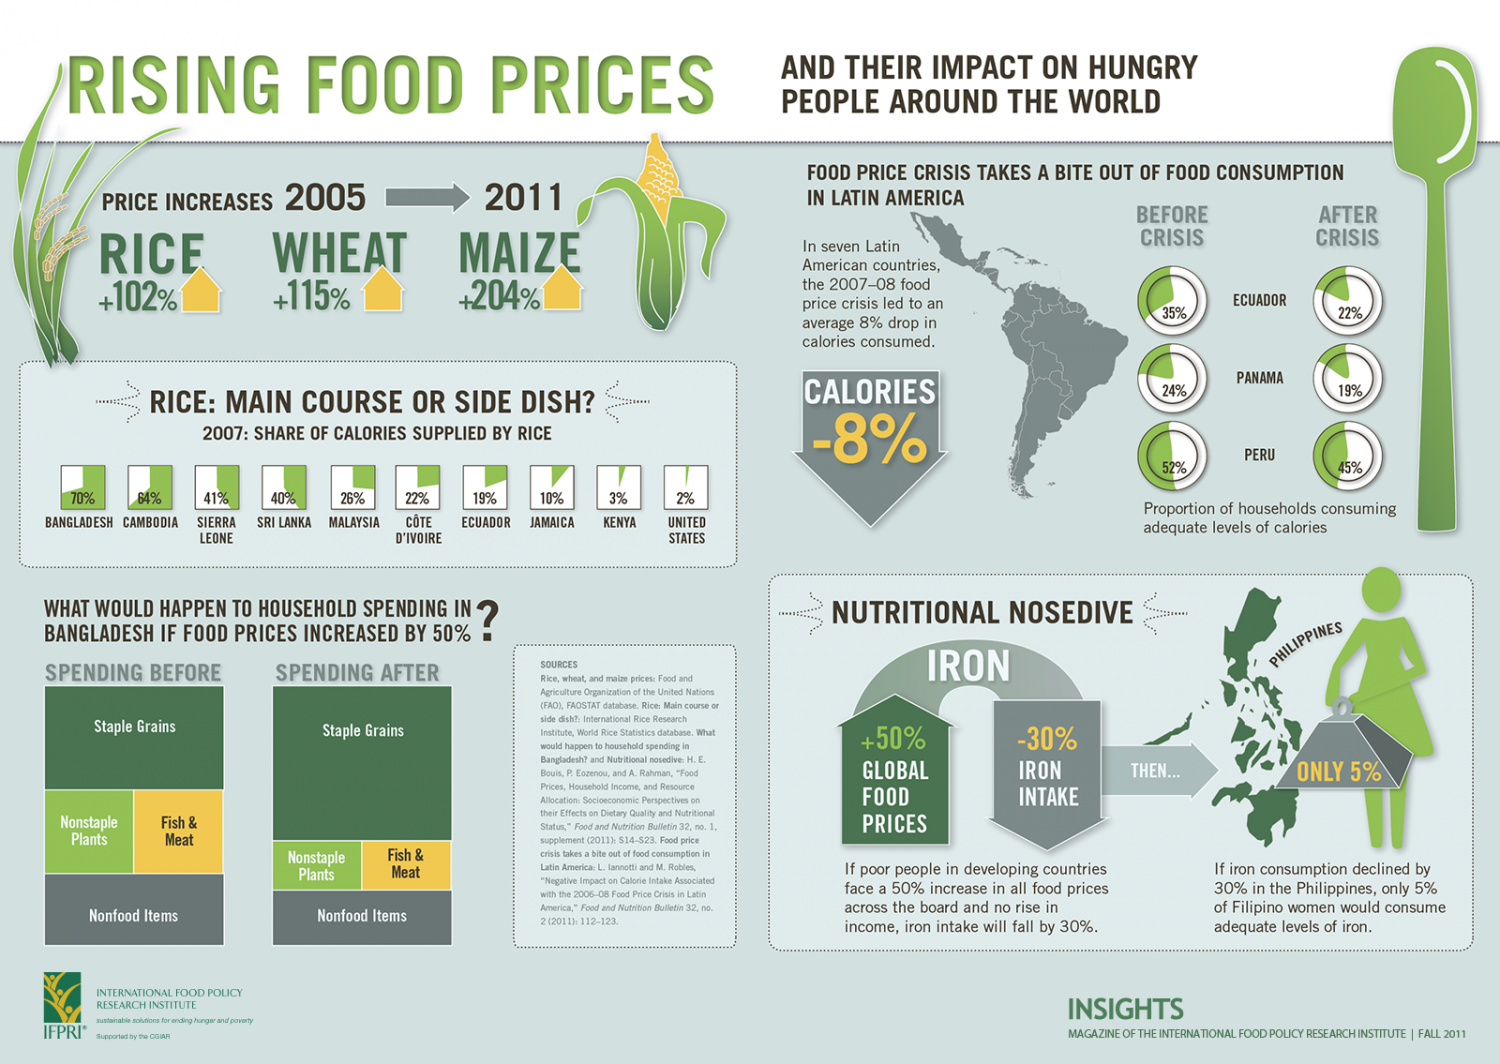 Rising Food Prices, and their impact on hungry people around the world Infographic